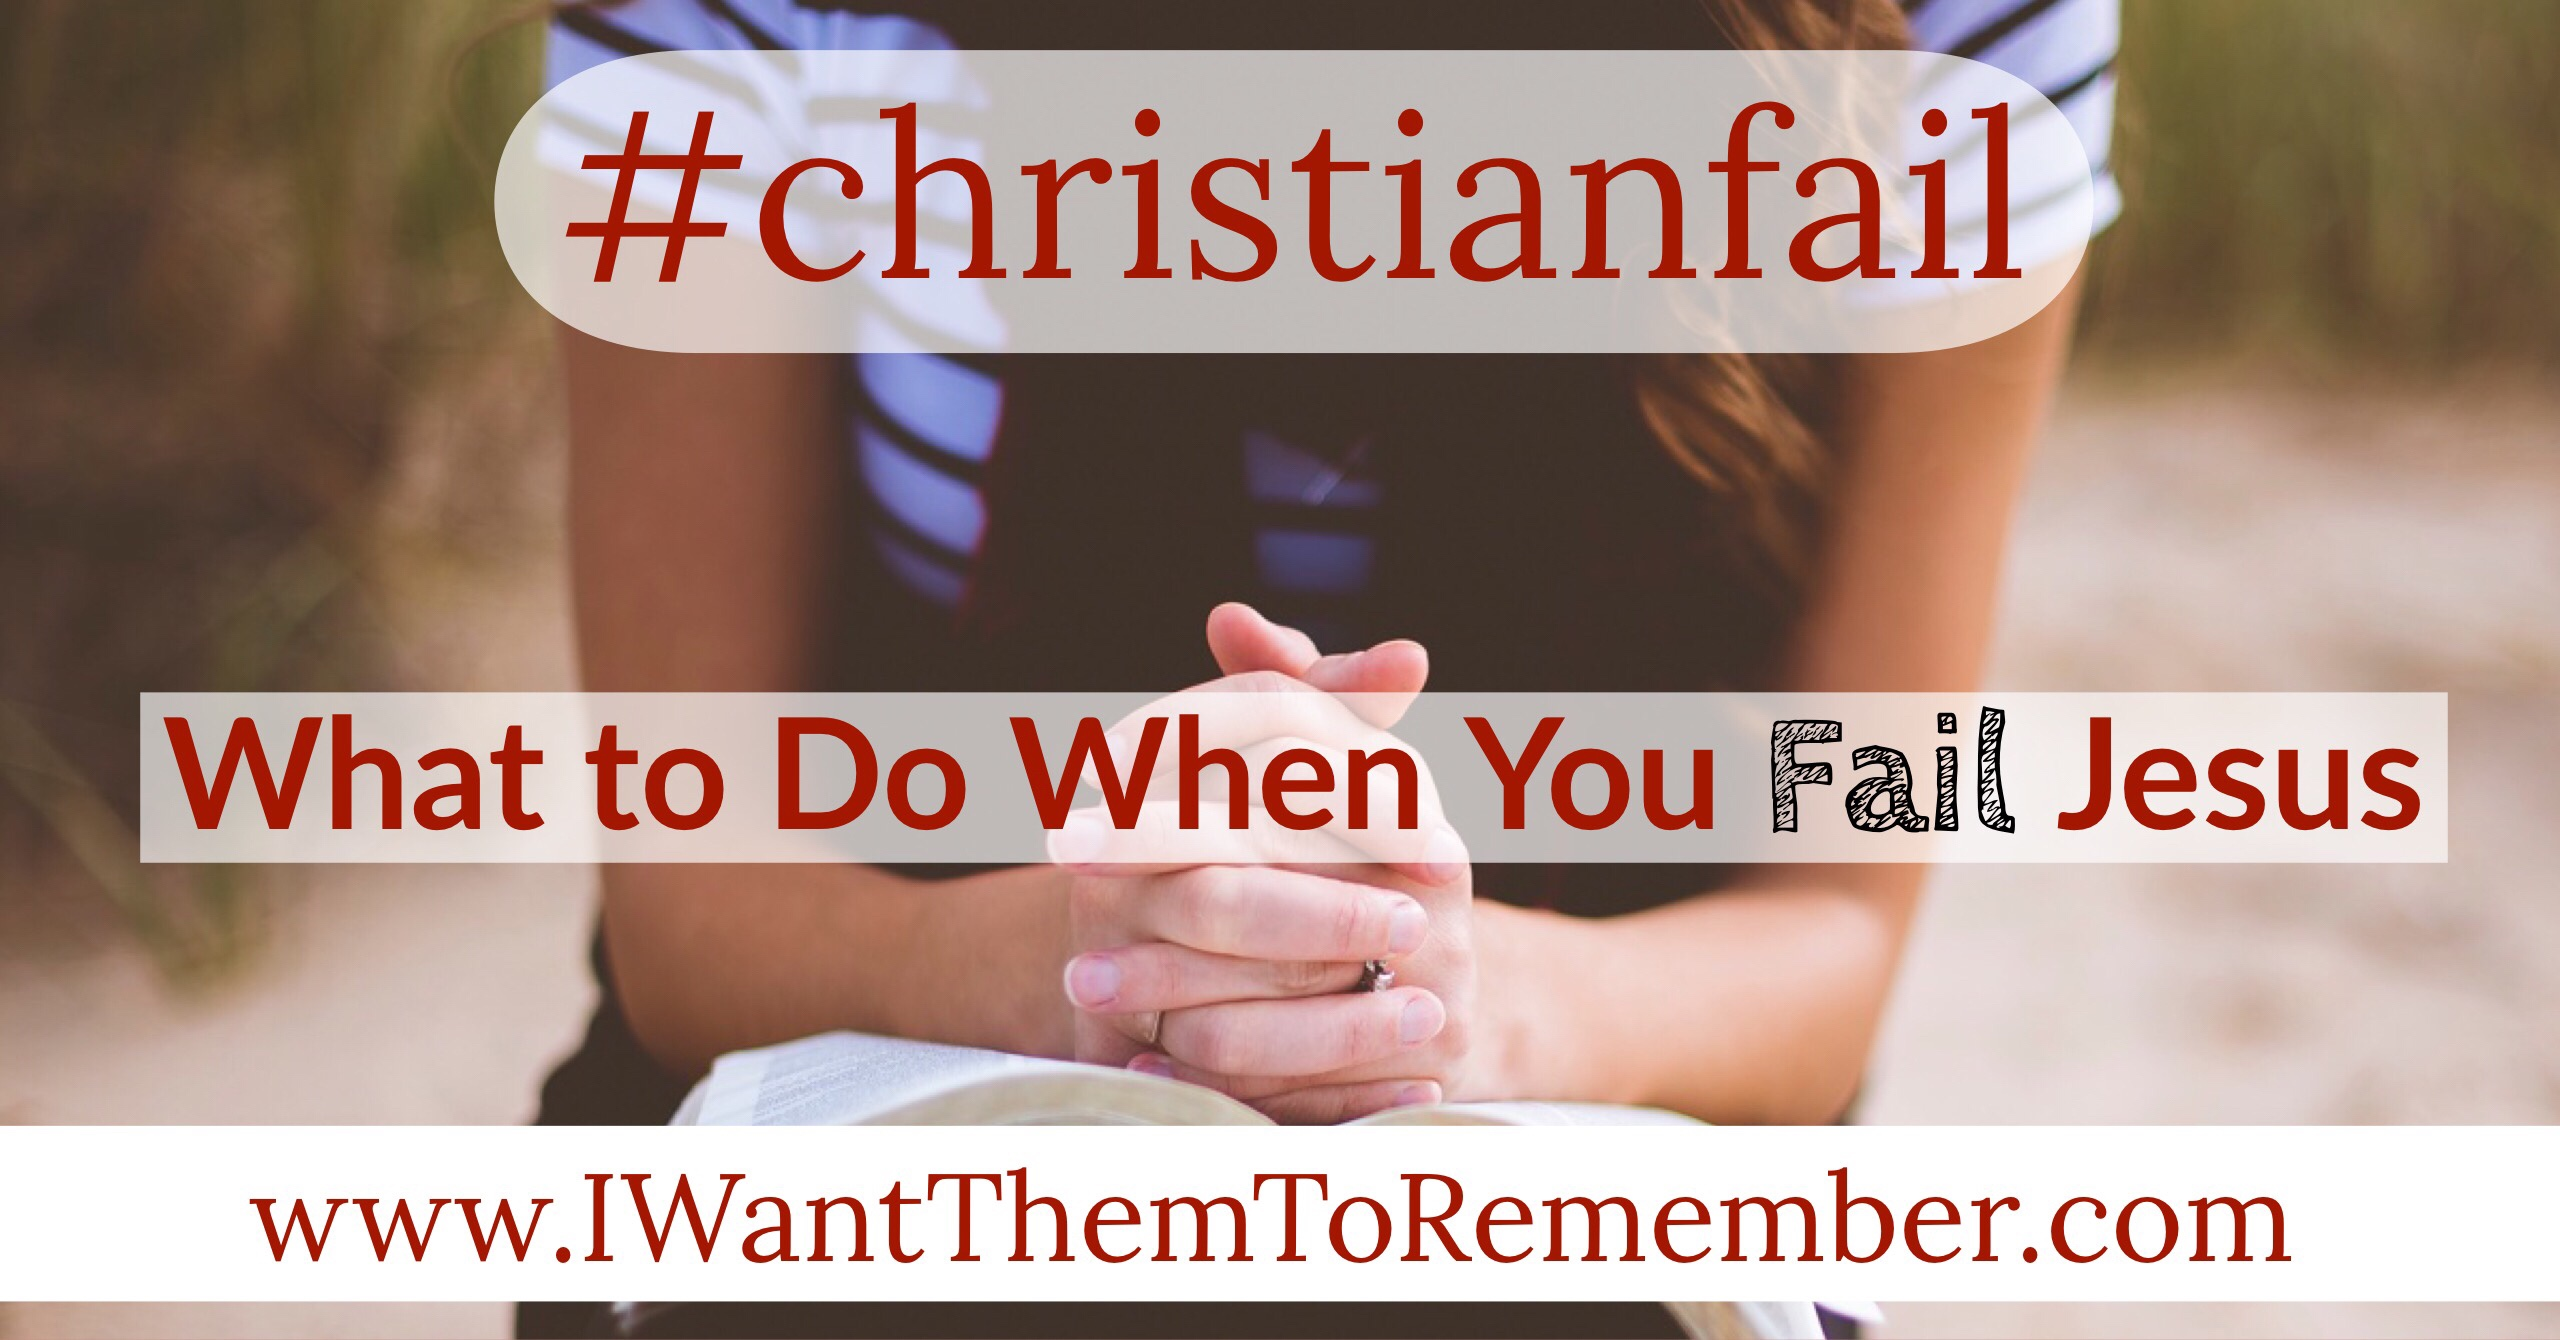 #christianfail I Want them to remember